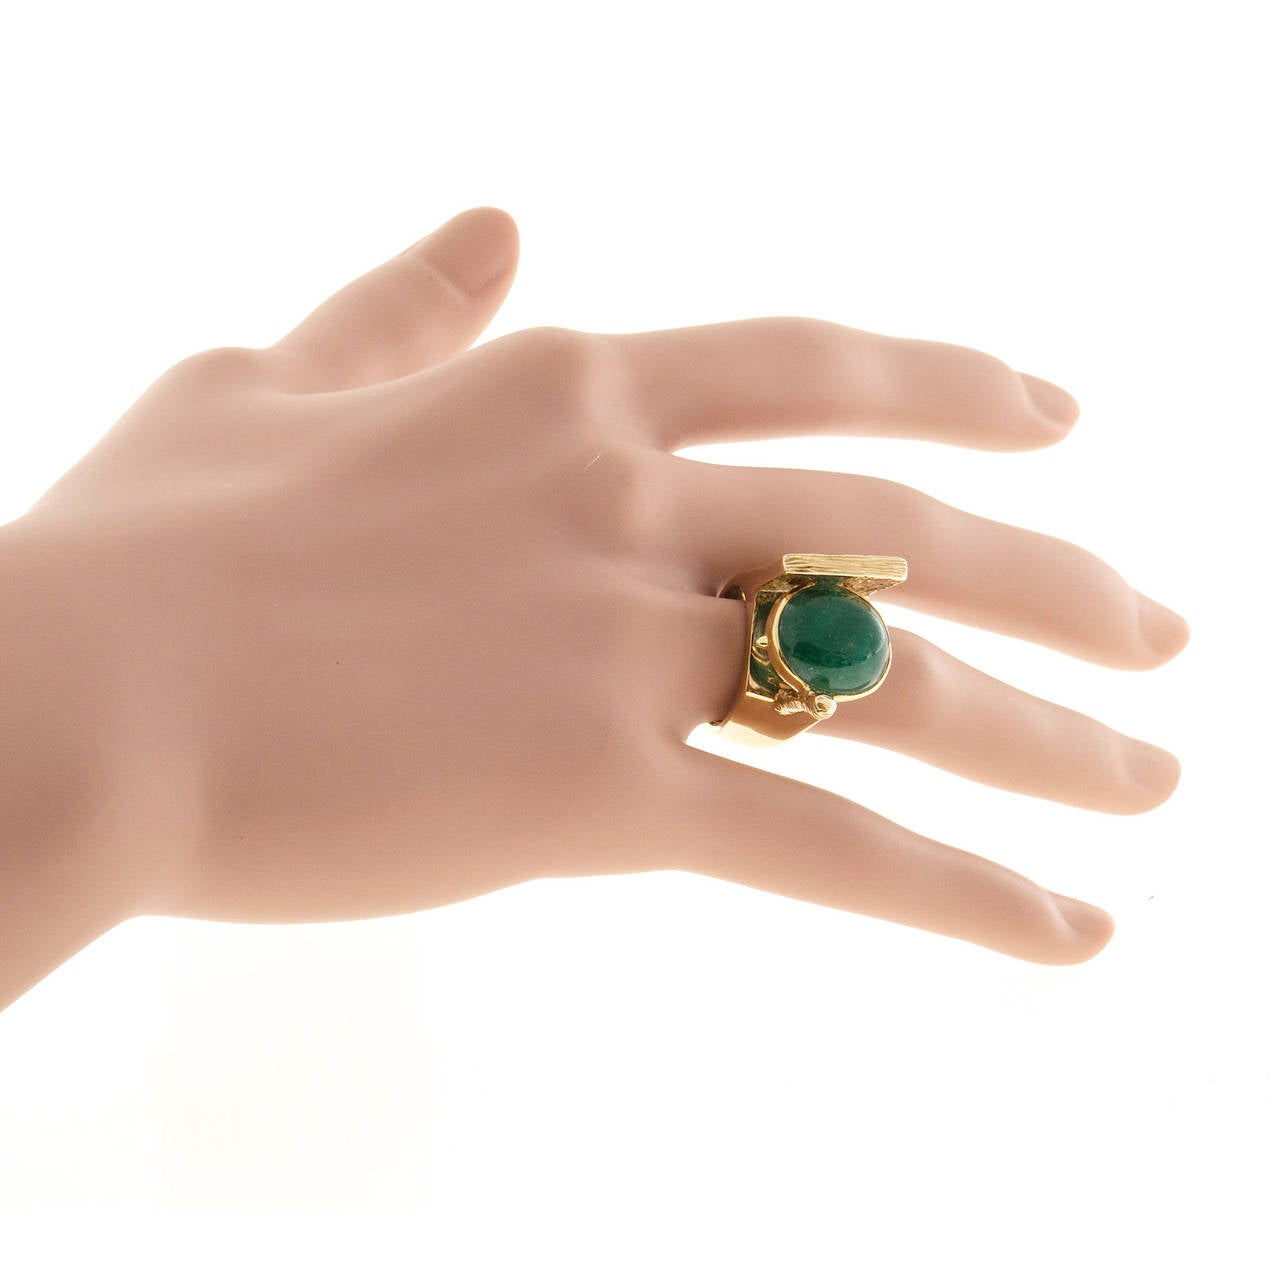 Extremely unusual one of a kind 1950's designer ring, signed Jordin.  Very heavy solid construction bezel set with a natural very good color deep green emerald. Side signed: Jordin. Translucent emerald. Textured and shiny finish. Well-polished